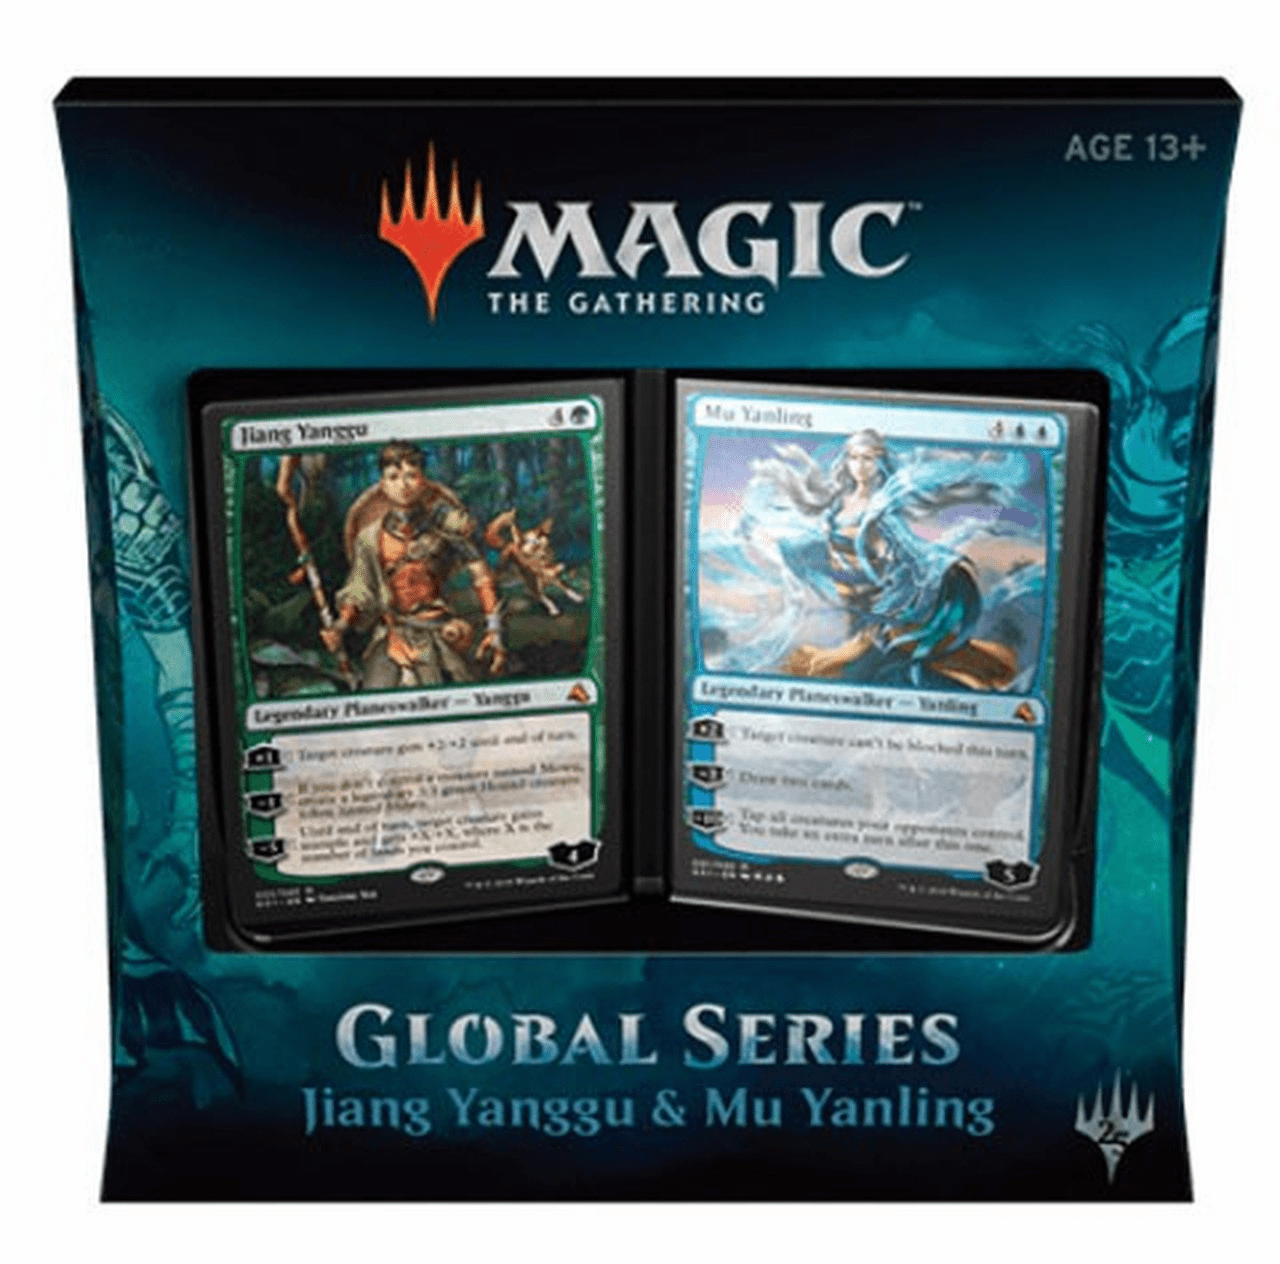 Magic The Gathering Global Series Jiang Yanggu & Mu Yanling Duel Deck